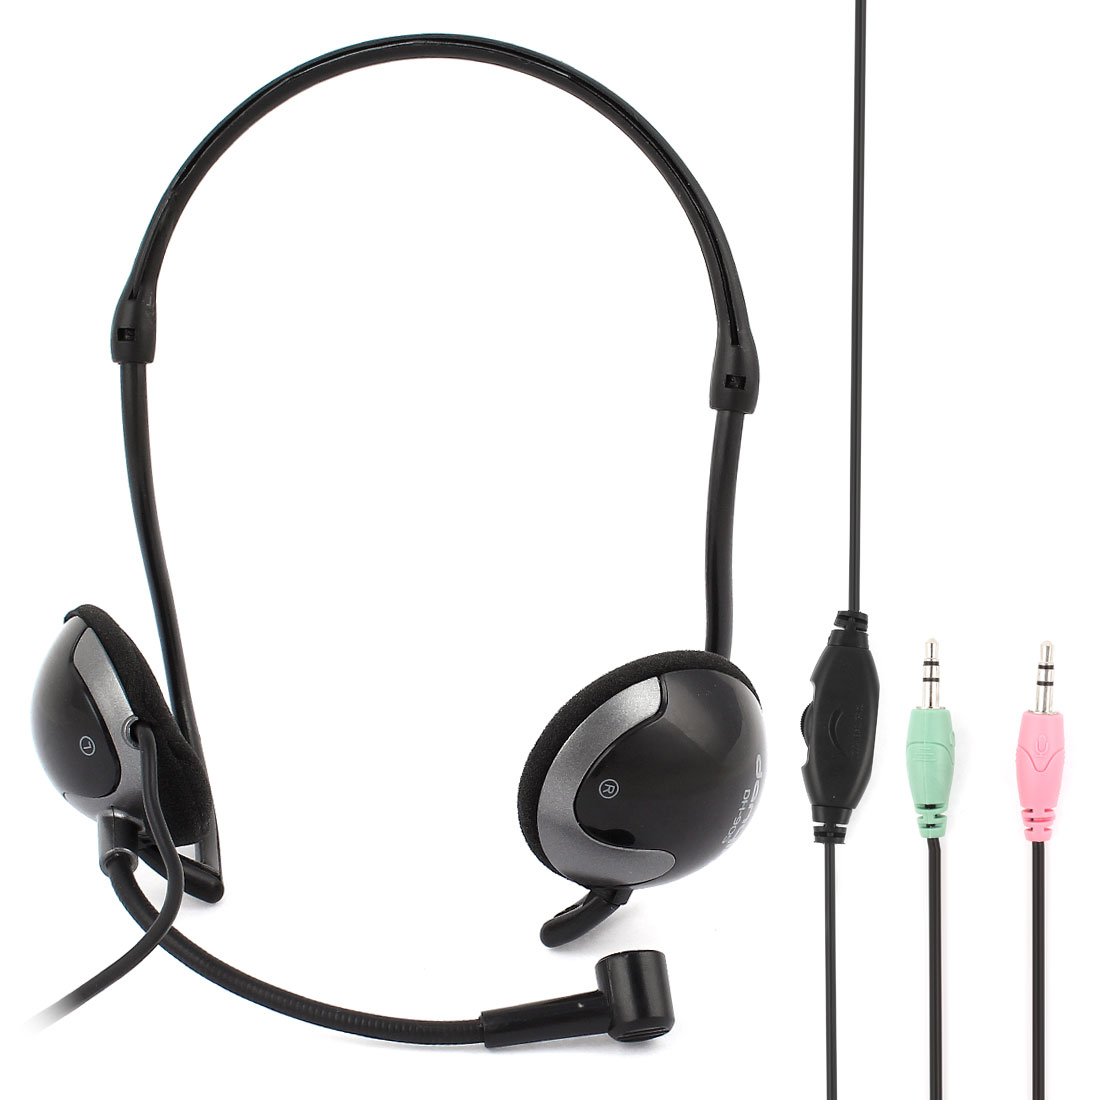 3.5mm Stereo Wired Headphone Headset Black for Mobile Phone Laptop PC Tablet